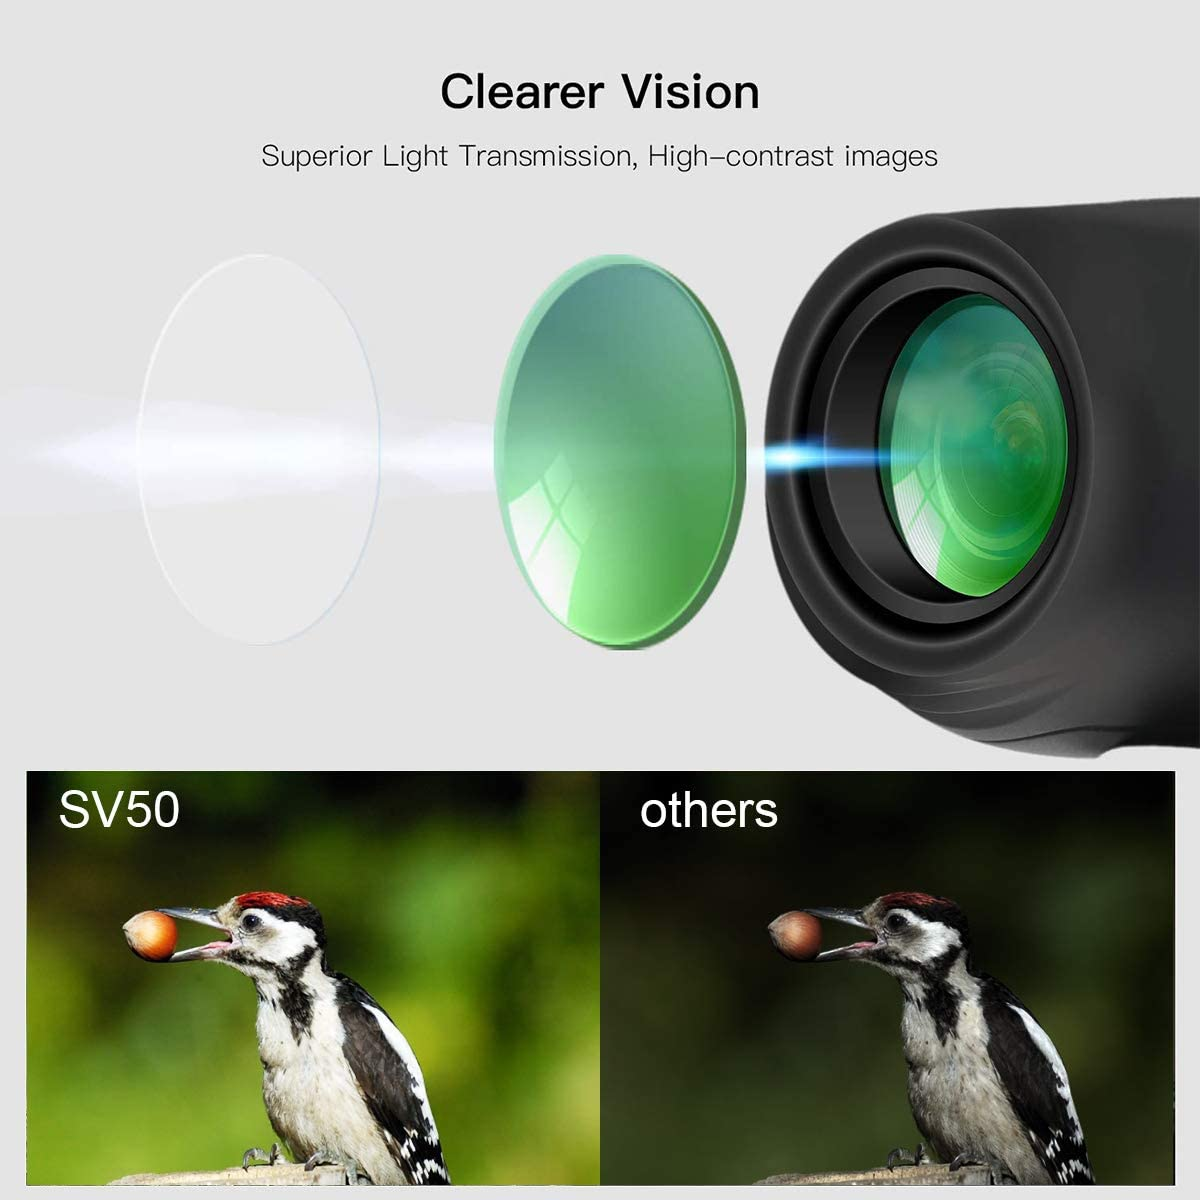 SVBONY SV50 Compact Binoculars 10X22 Small Pocket Binoculars Lightweight Binocular for Adults Kids for Bird Watching Traveling Sightseeing